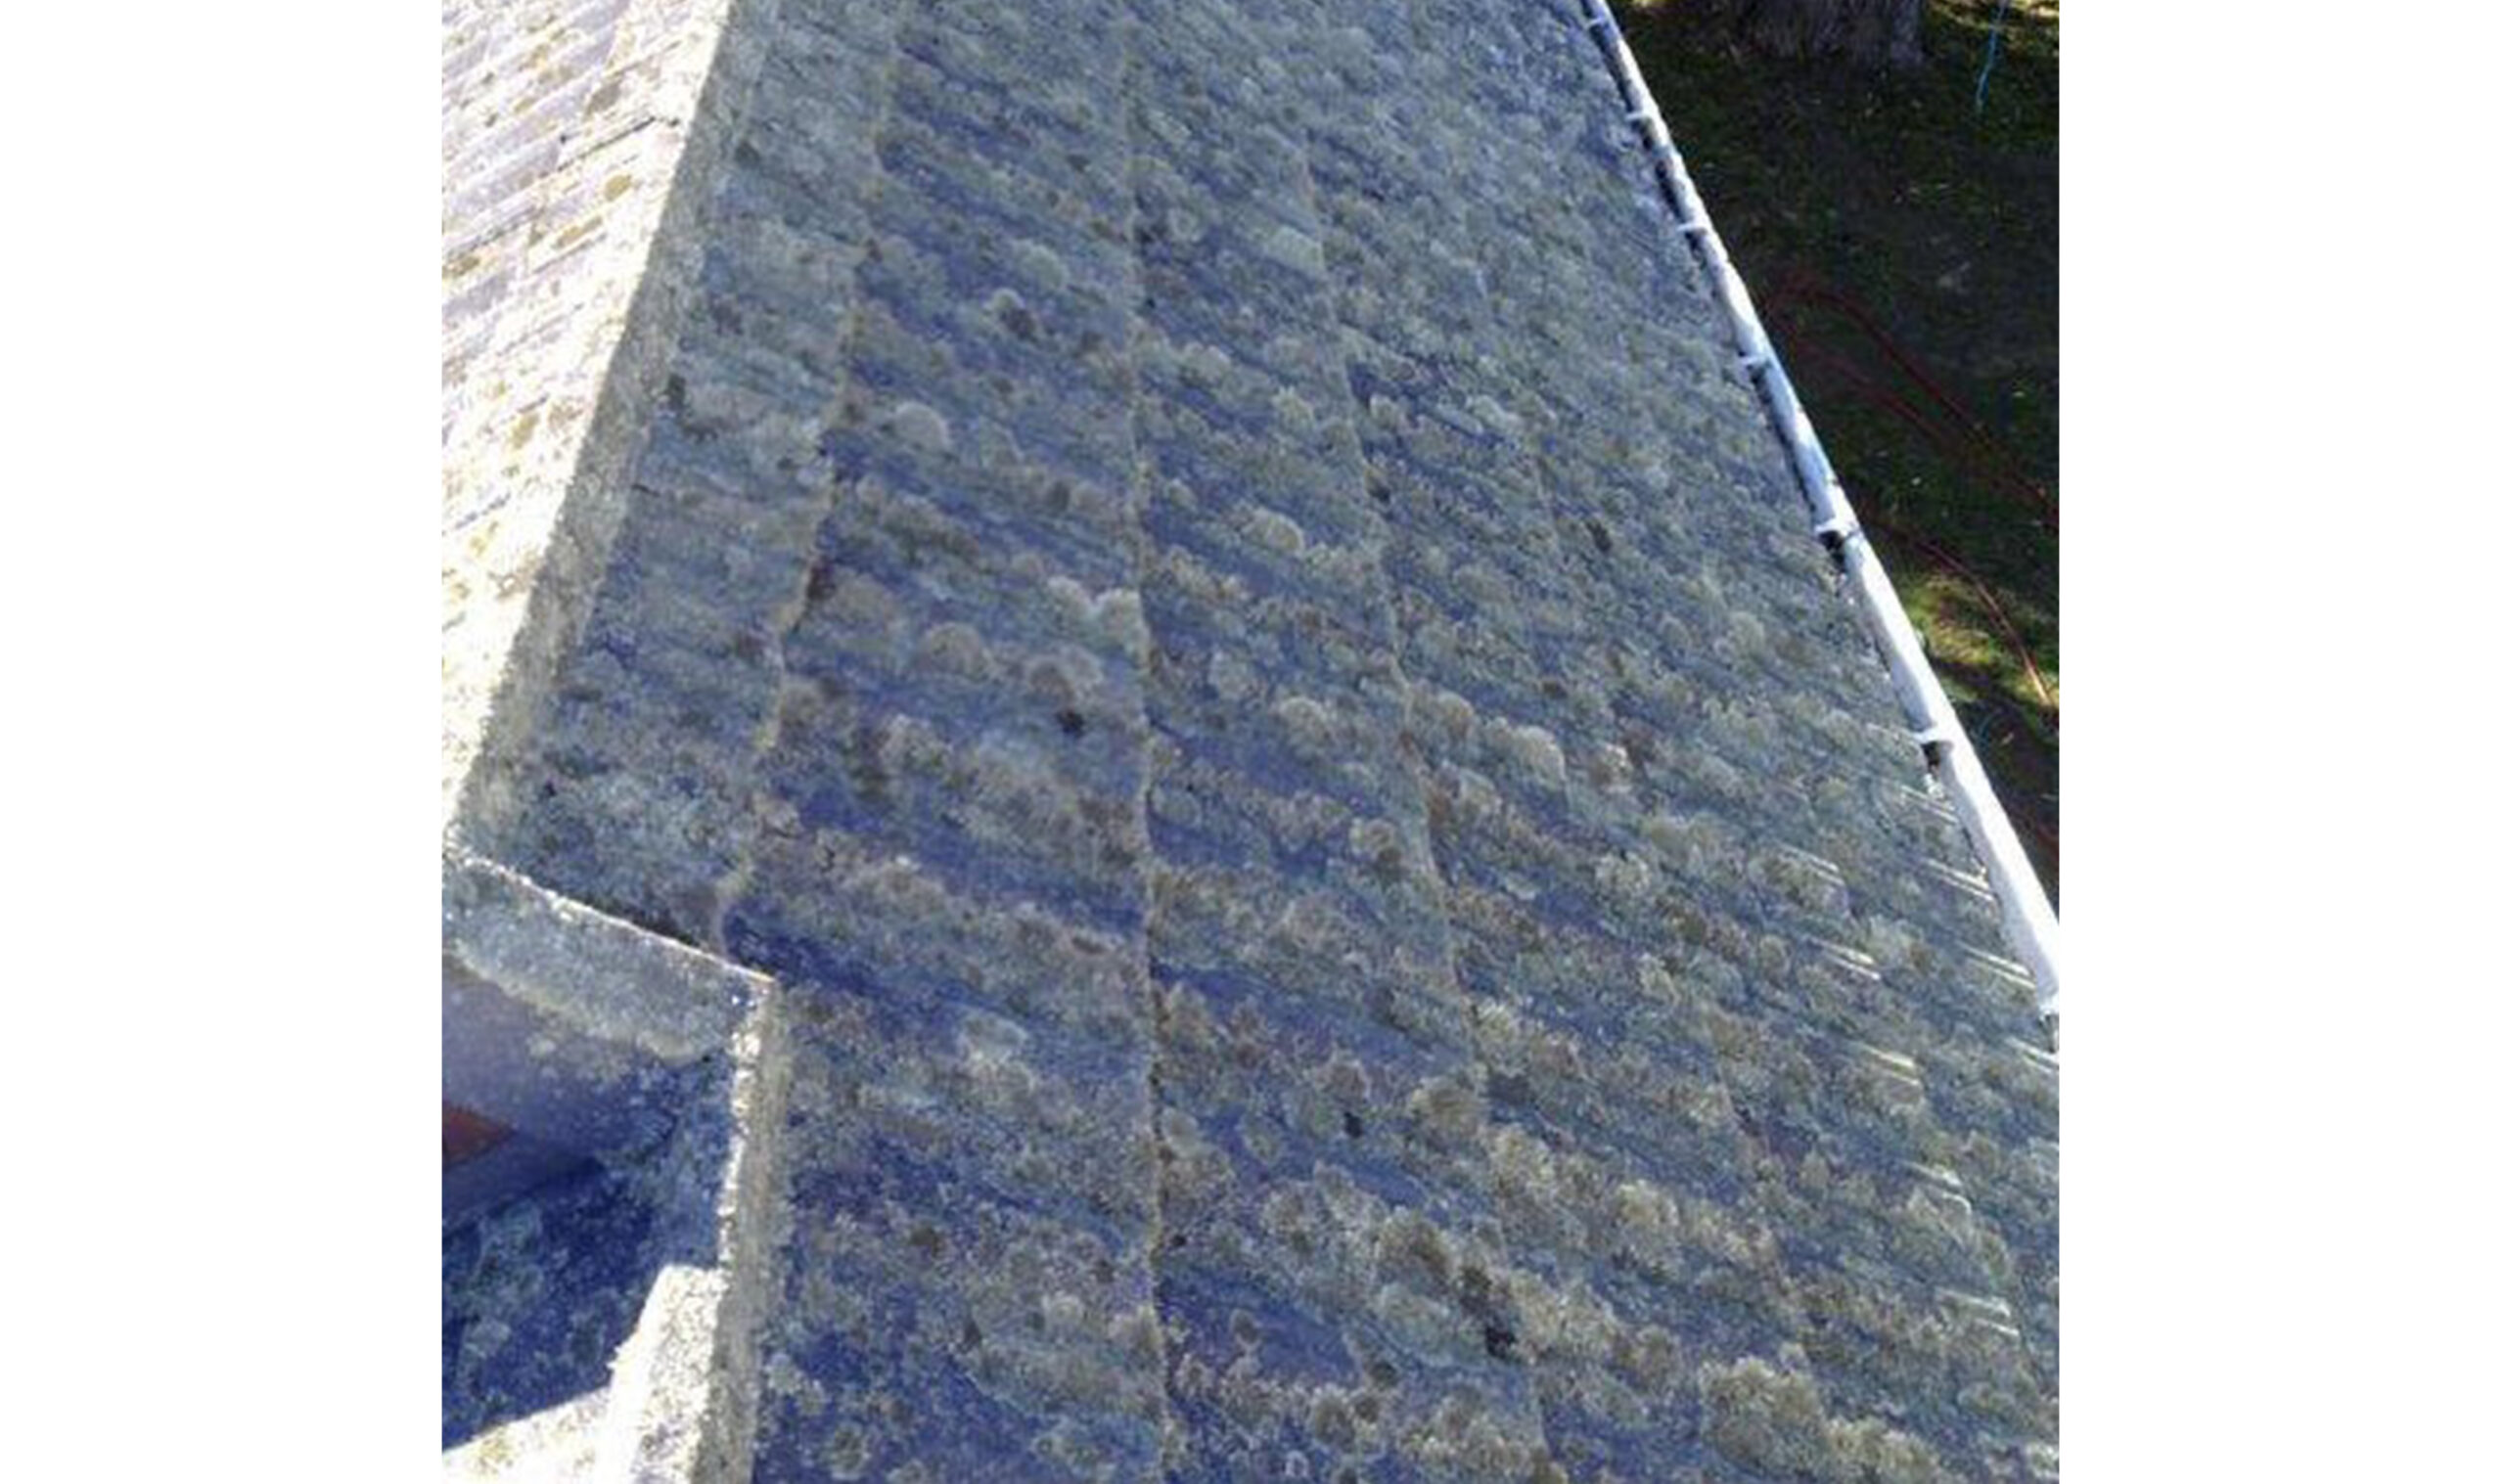 Roof Cleaning - Gerard tile roof with heavy lichen growth